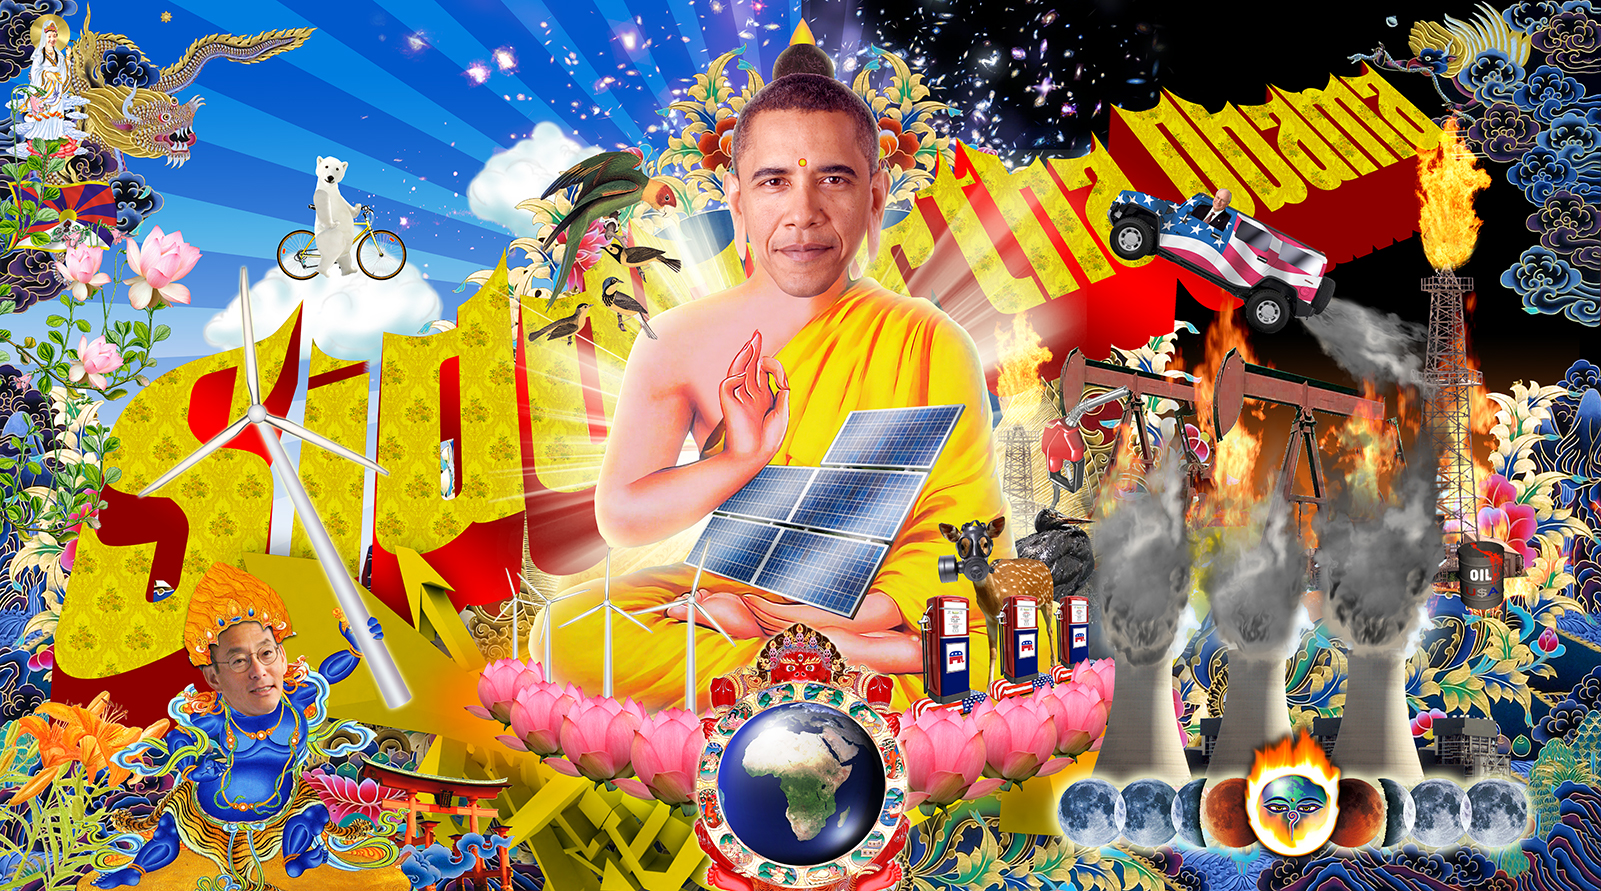 A political collage including an image of Barak Obama's head on the body of Siddhartha Gautama.